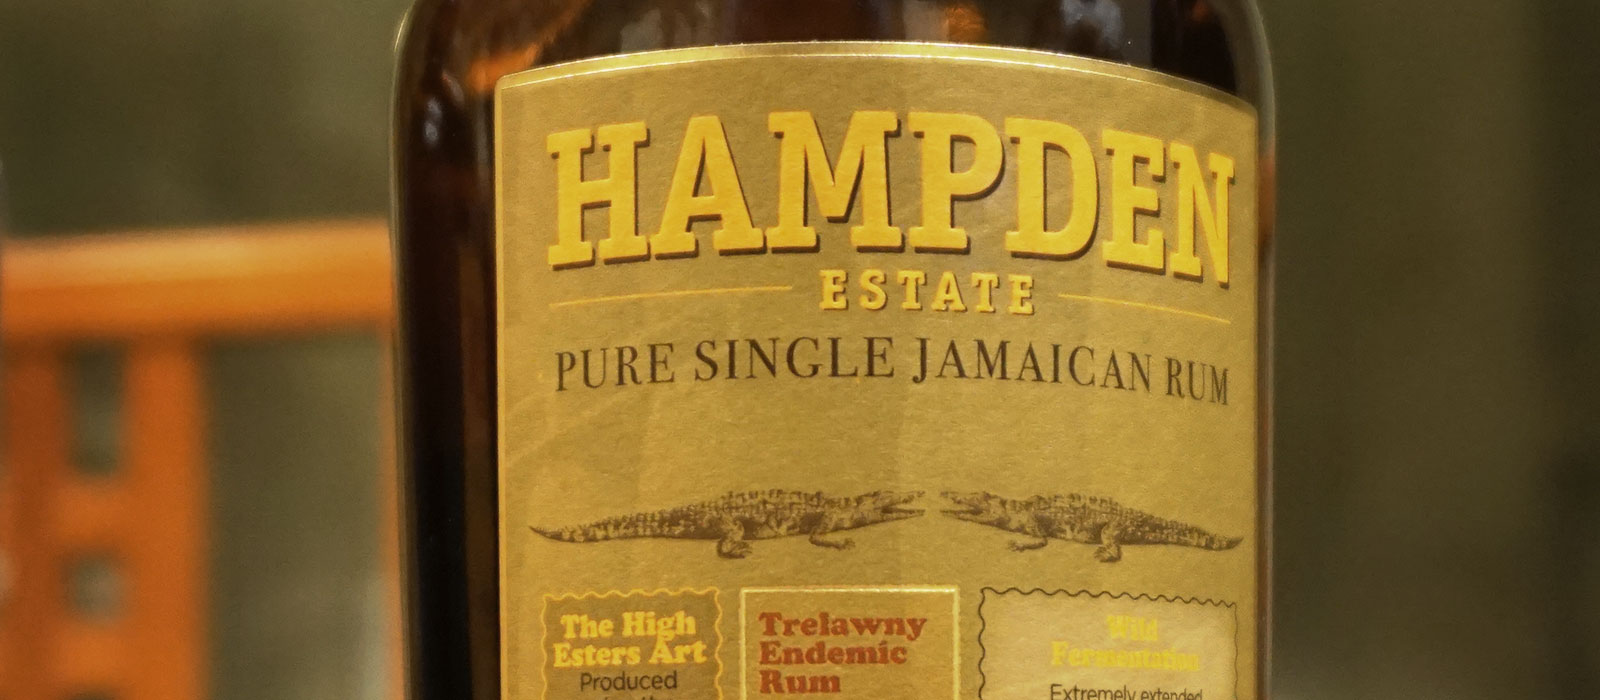 Månadens rom januari 2019: Hampden Estate Pure Single Jamaican Rum